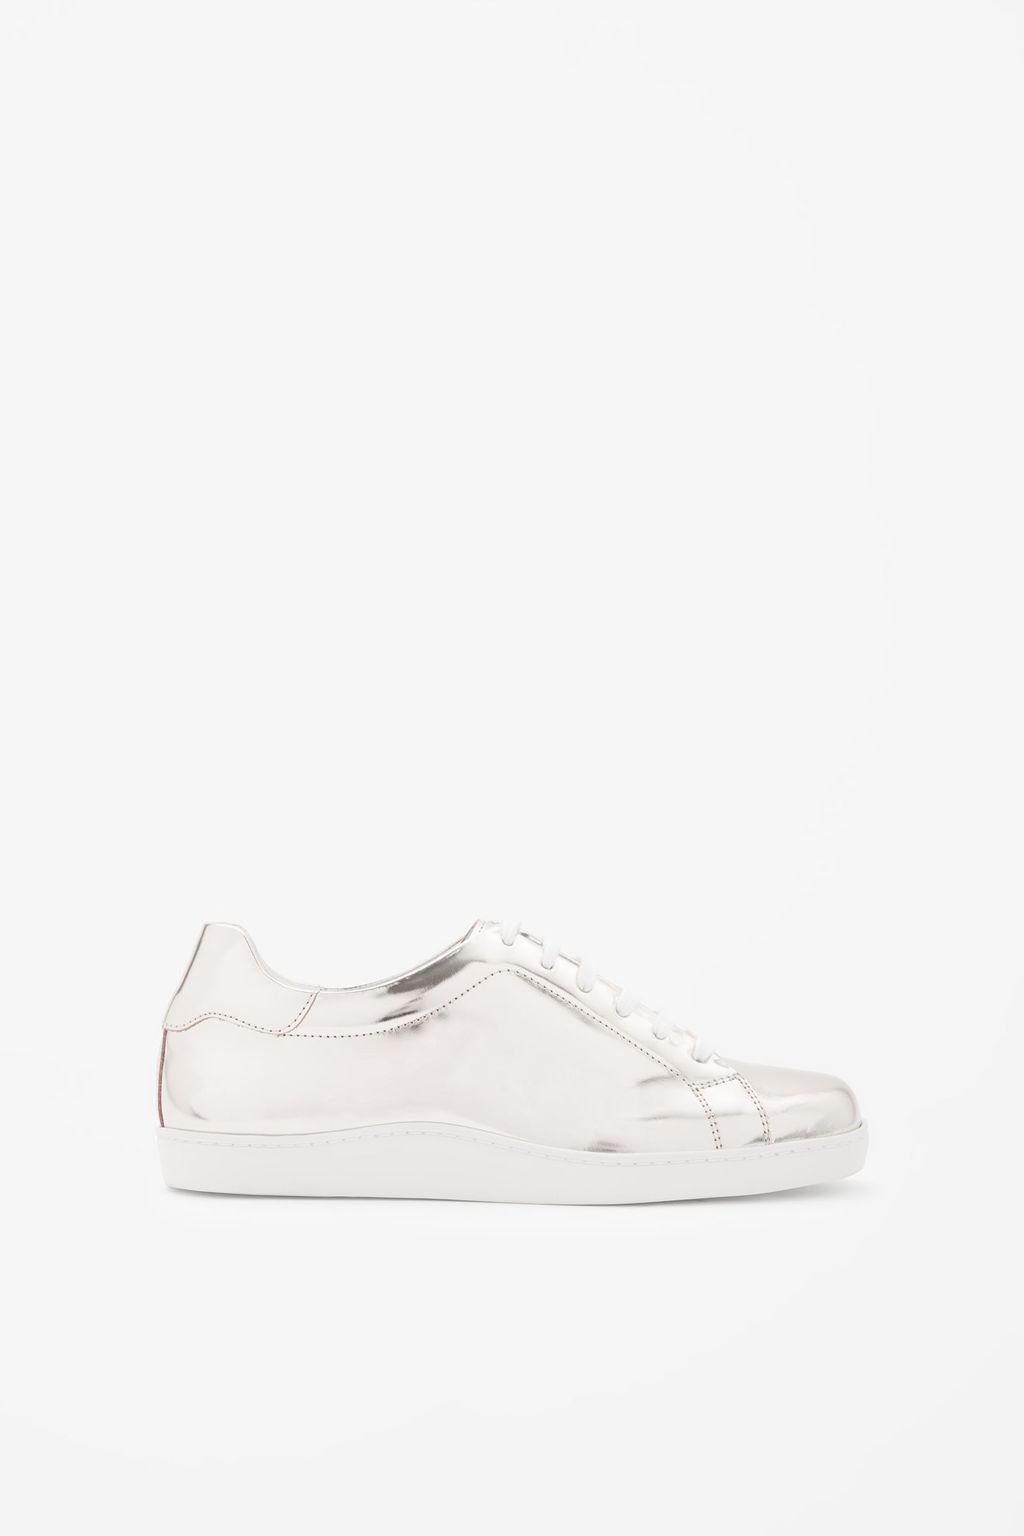 Metallic Lace Up Sneakers - secondary colour: white; predominant colour: silver; occasions: casual; material: leather; heel height: flat; toe: round toe; style: trainers; finish: metallic; pattern: colourblock; season: s/s 2016; wardrobe: highlight